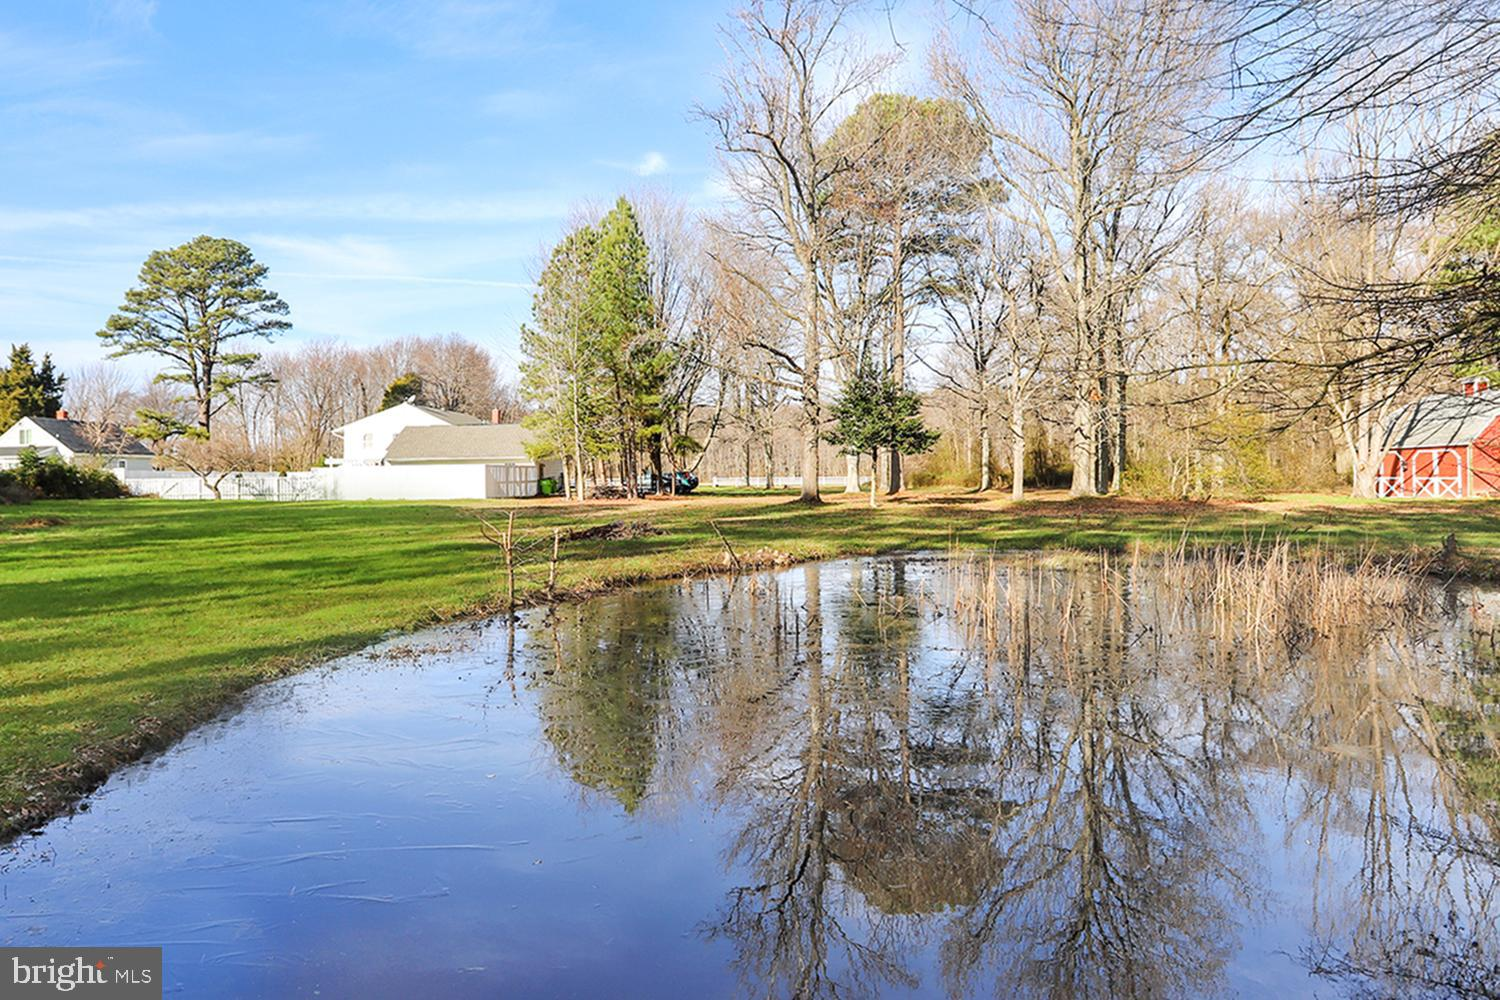 HEAVENLY CHESAPEAKE HOMESTEAD ON KENT ISLAND!  Pastoral 2.75 ACRES minutes from town amenities & Bay